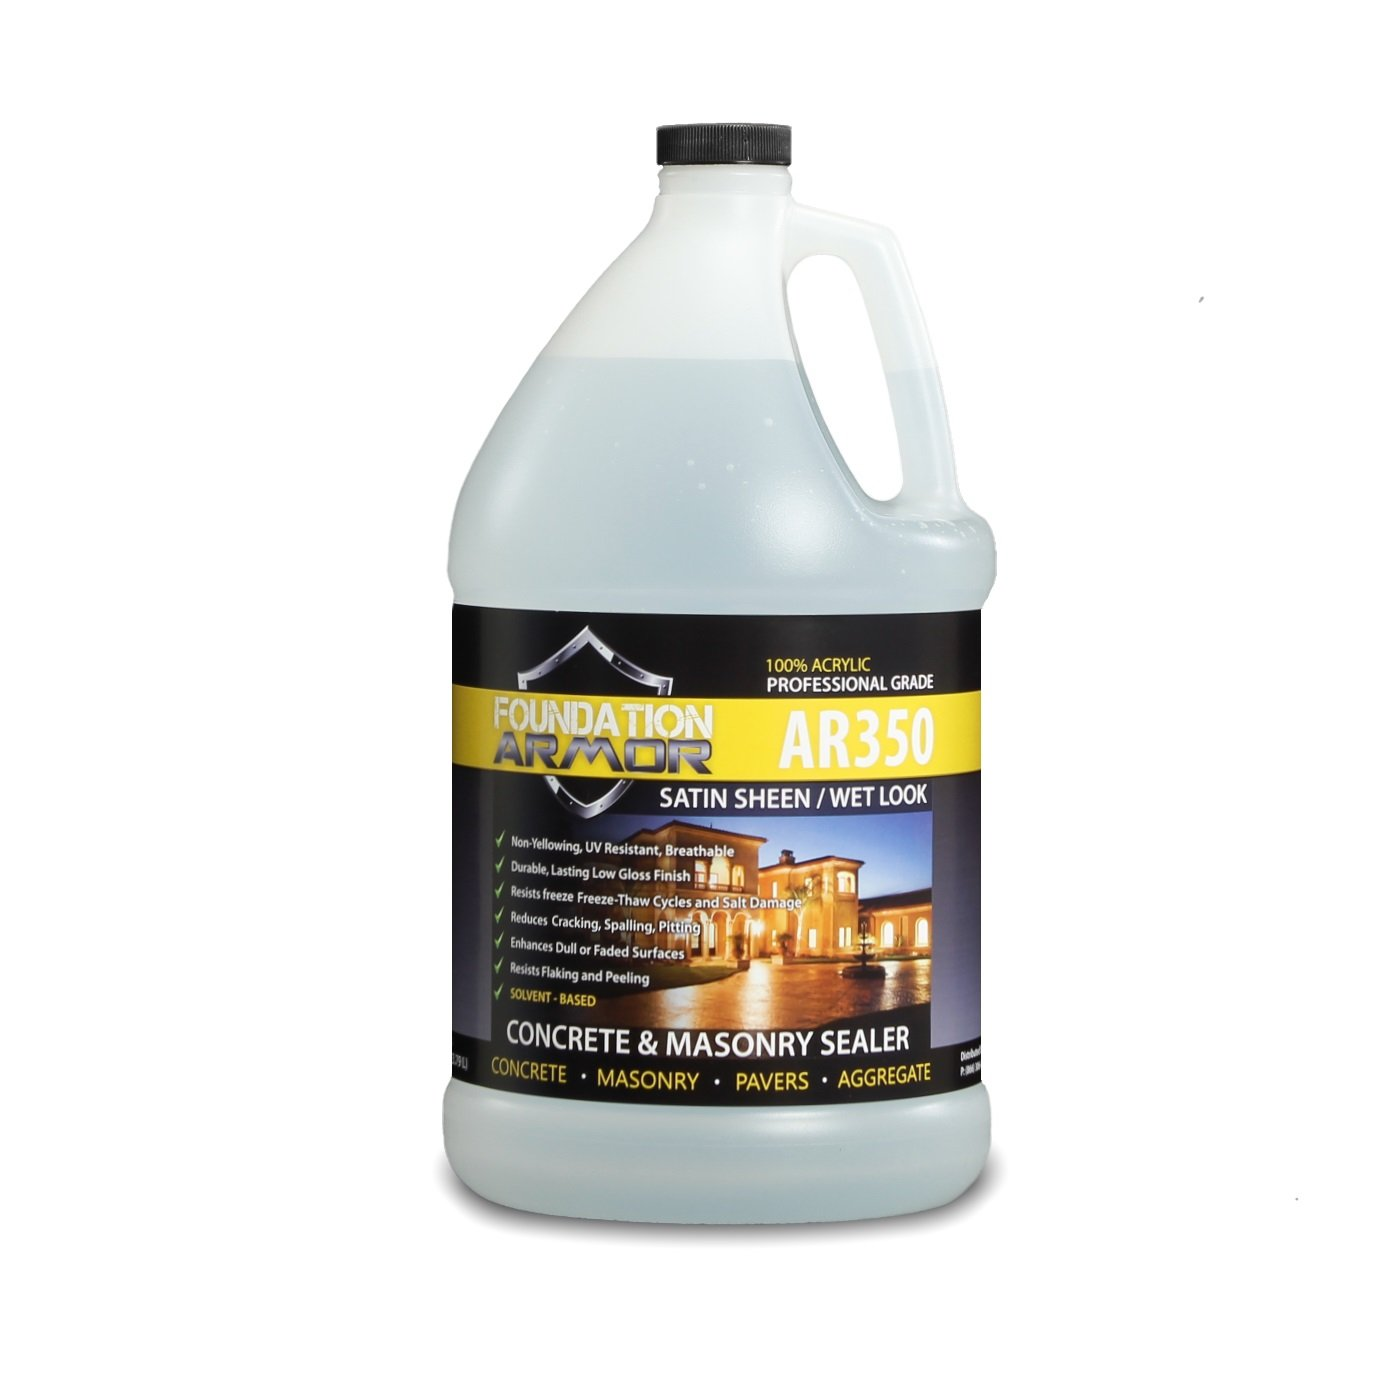 Armor AR350 Wet Look Concrete Sealer and Paver Sealer with Low Gloss Finish (1 GAL) by Foundation Armor (Image #1)